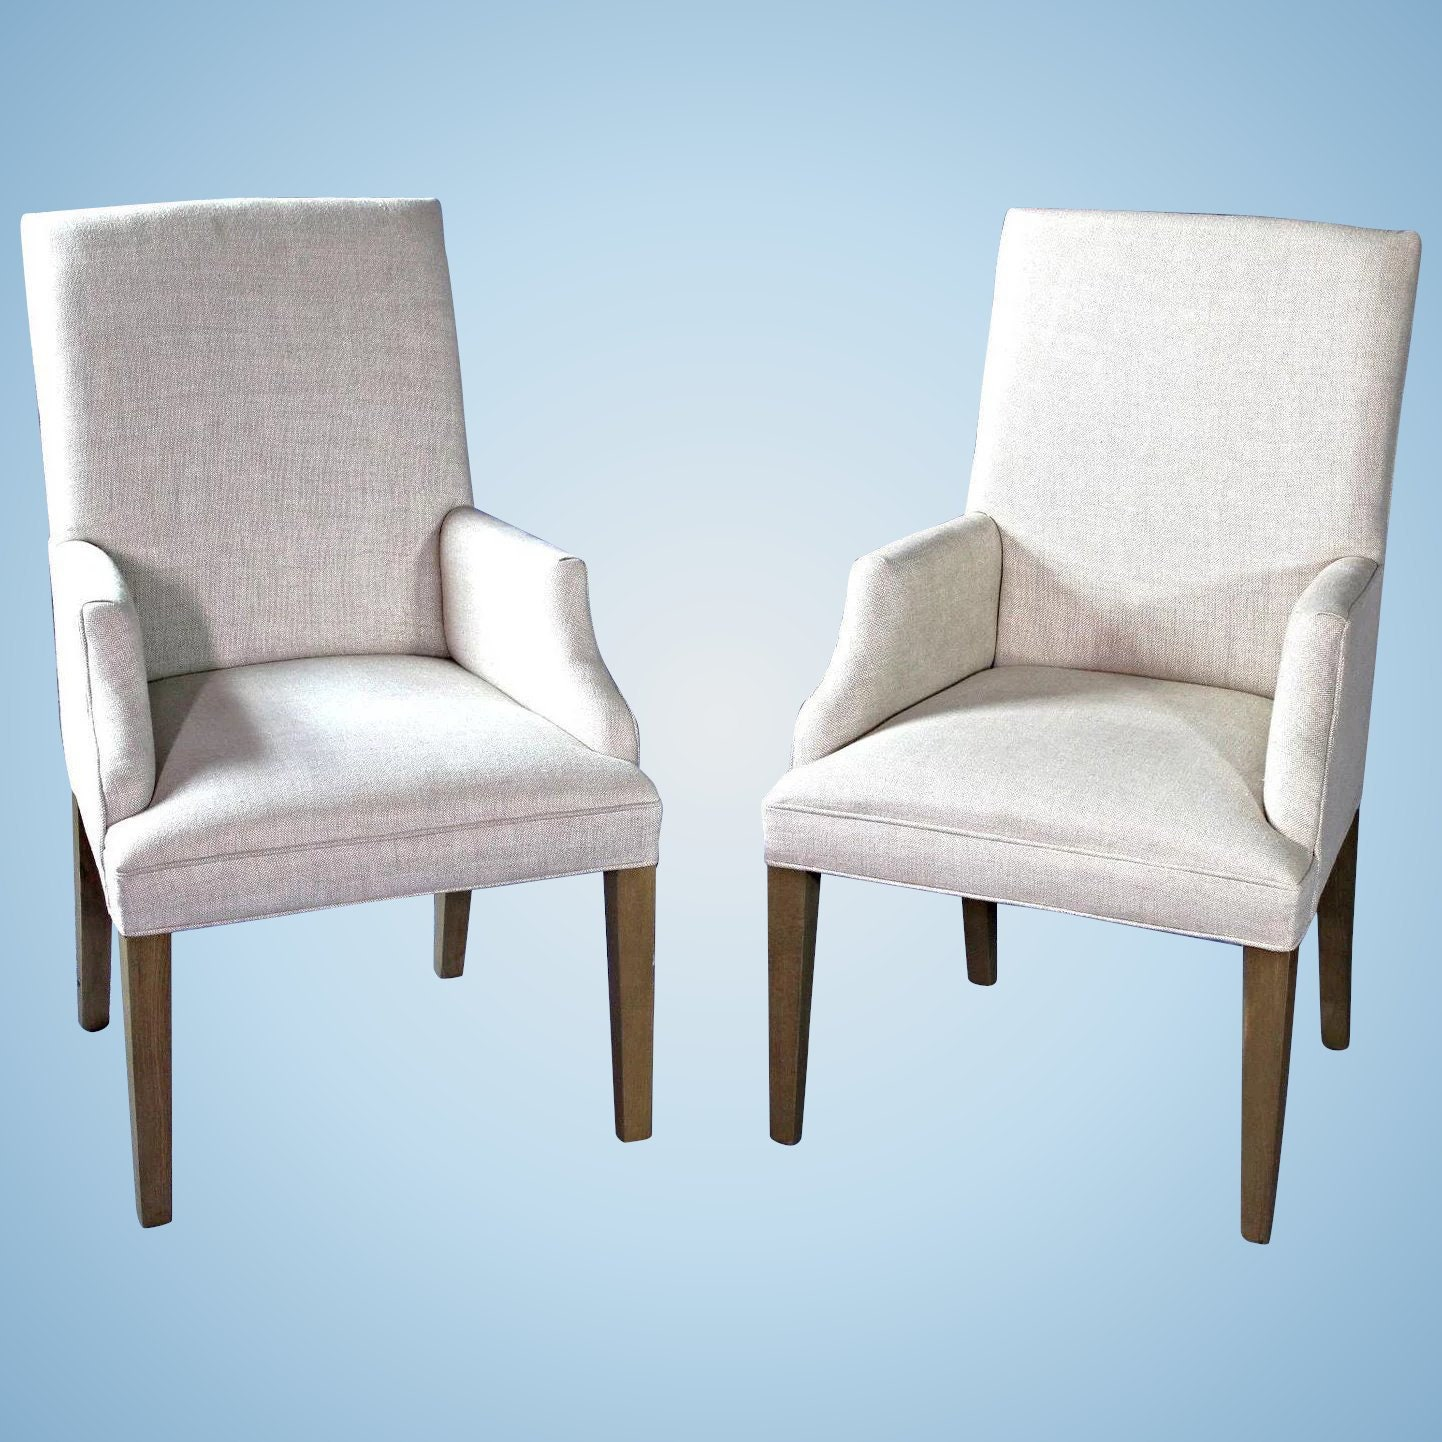 Custom Modern Upholstered Armchairs Chairs Settee Chaise Sofa Loveseat Couch